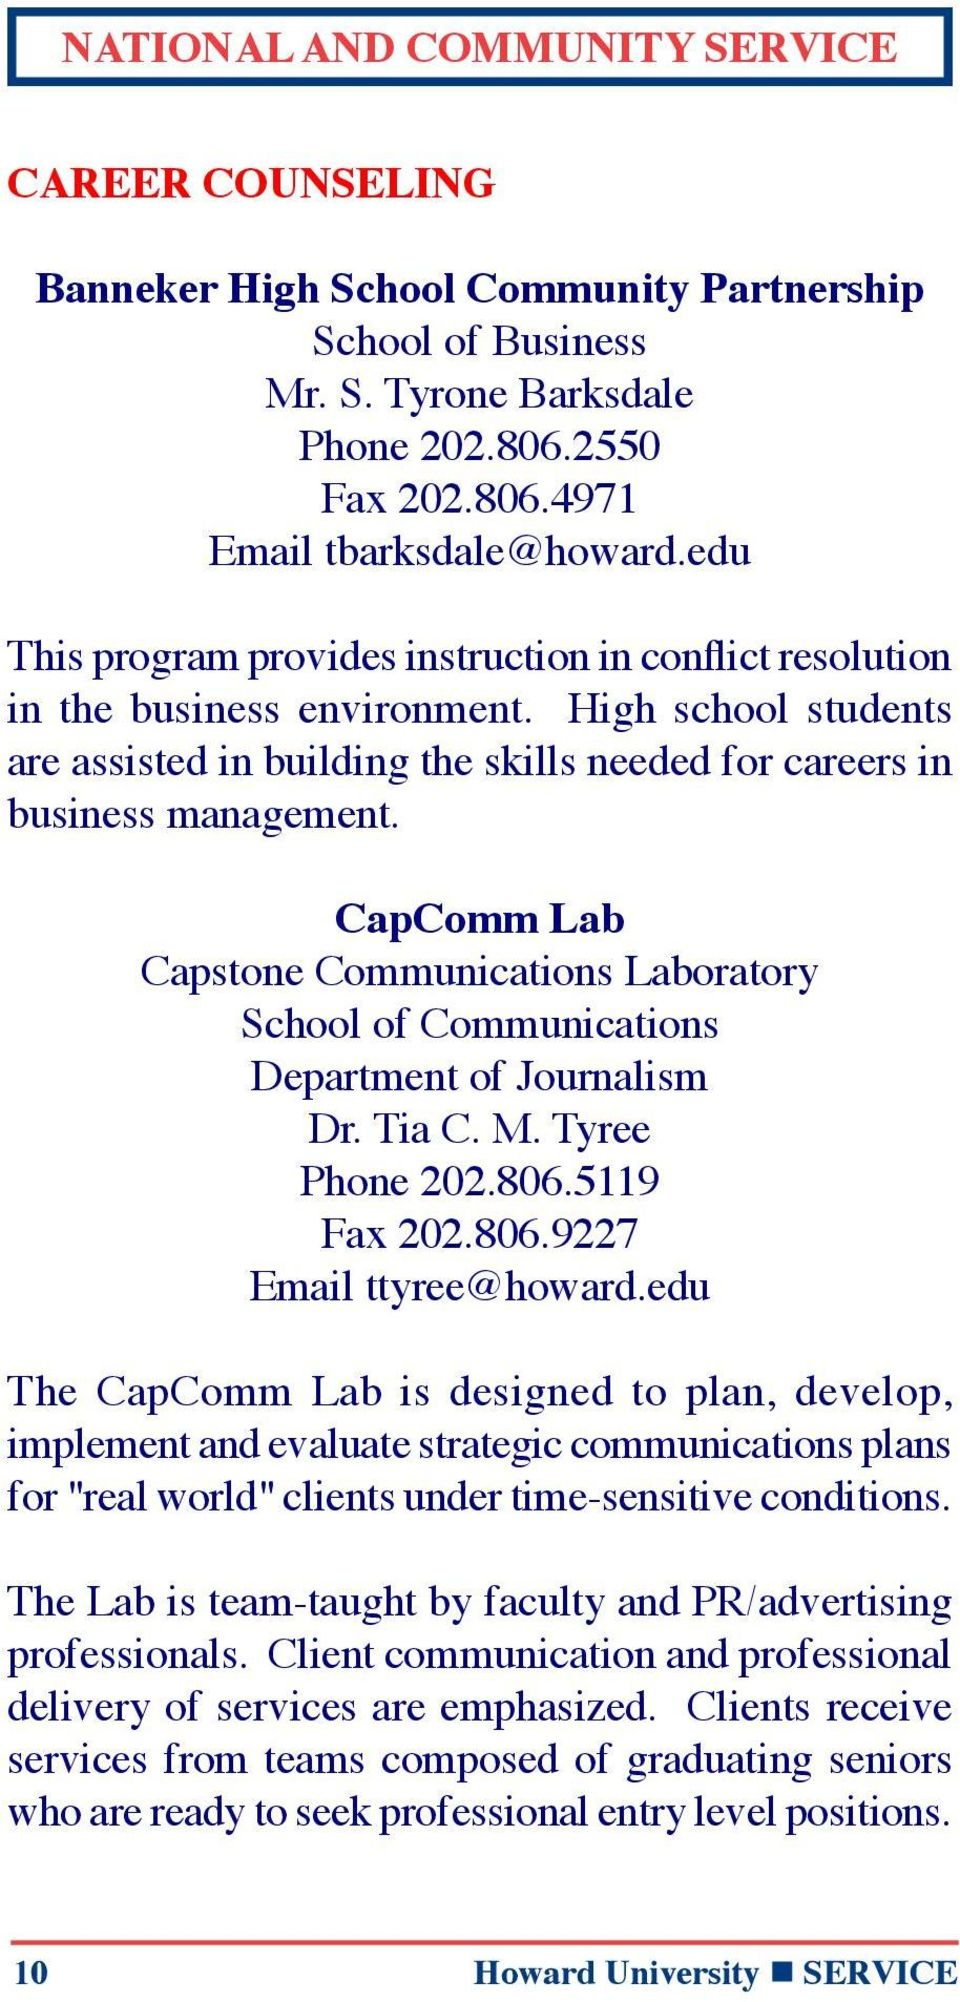 CapComm Lab Capstone Communications Laboratory School of Communications Department of Journalism Dr. Tia C. M. Tyree Phone 202.806.5119 Fax 202.806.9227 Email ttyree@howard.